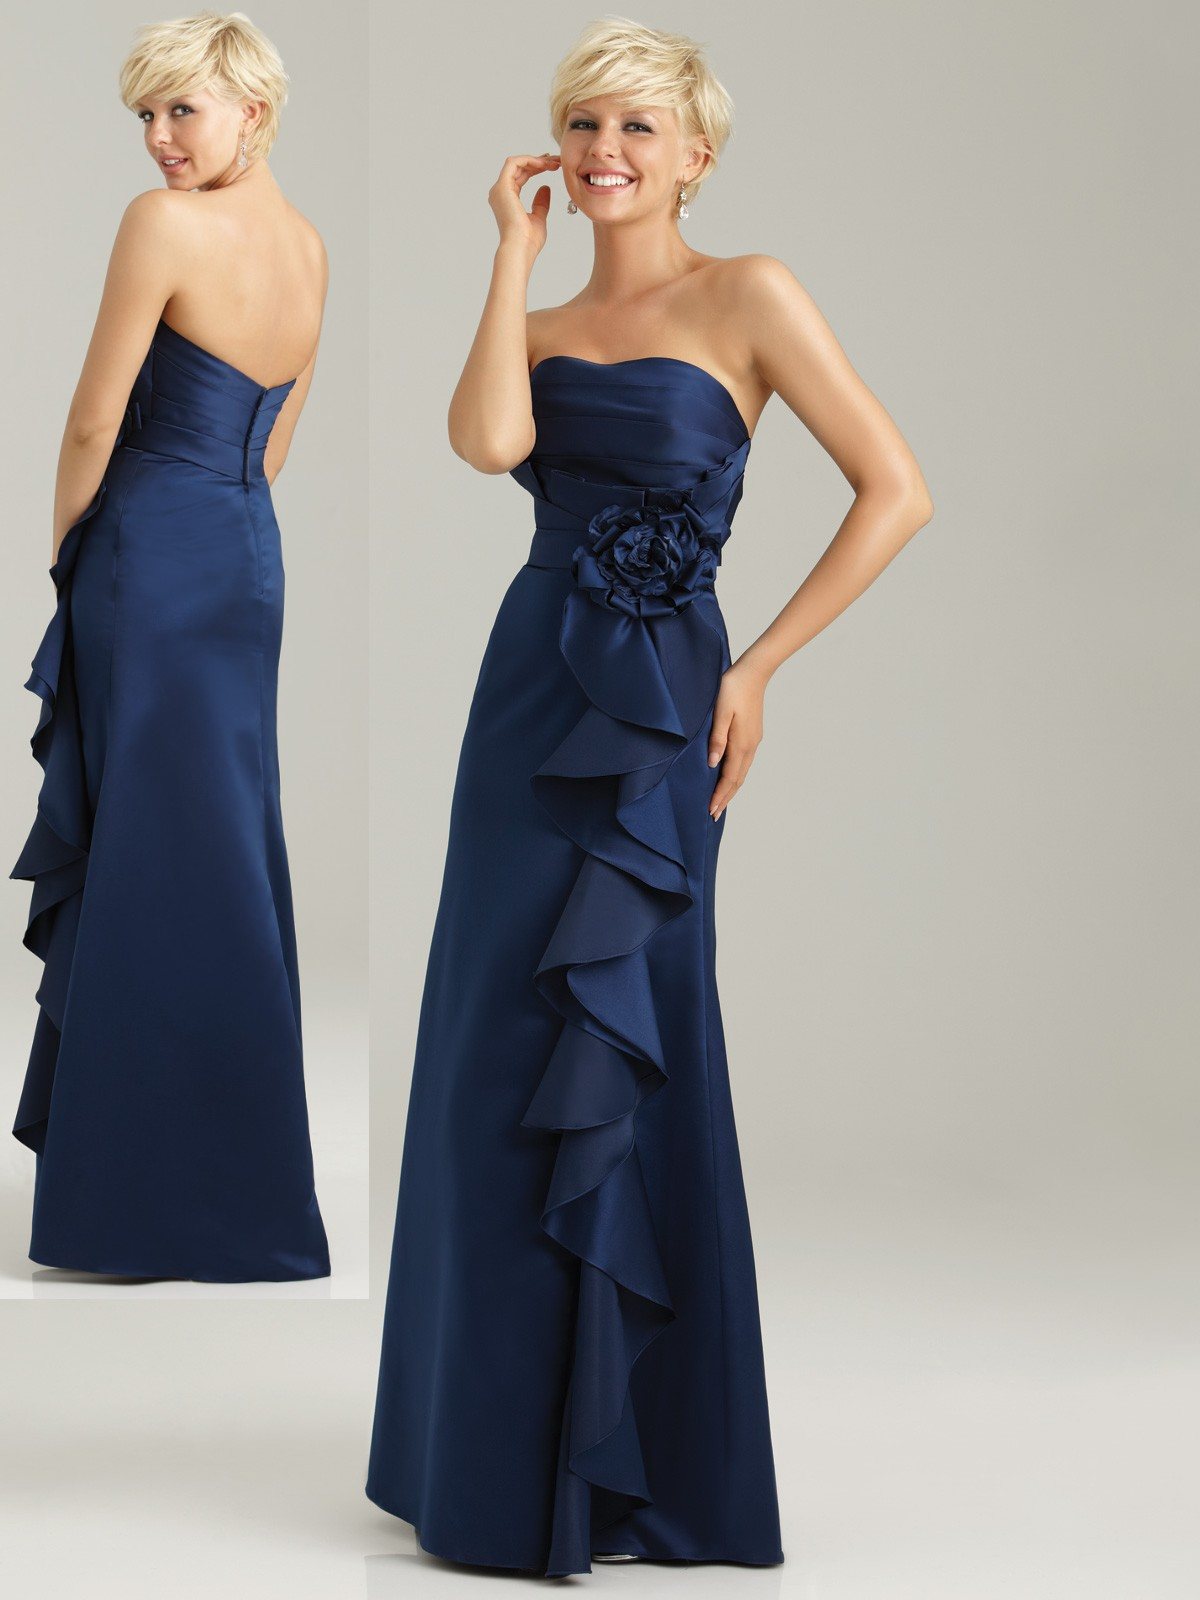 Strapless navy blue bridesmaid dress navy blue formal dress ombrellifo Image collections